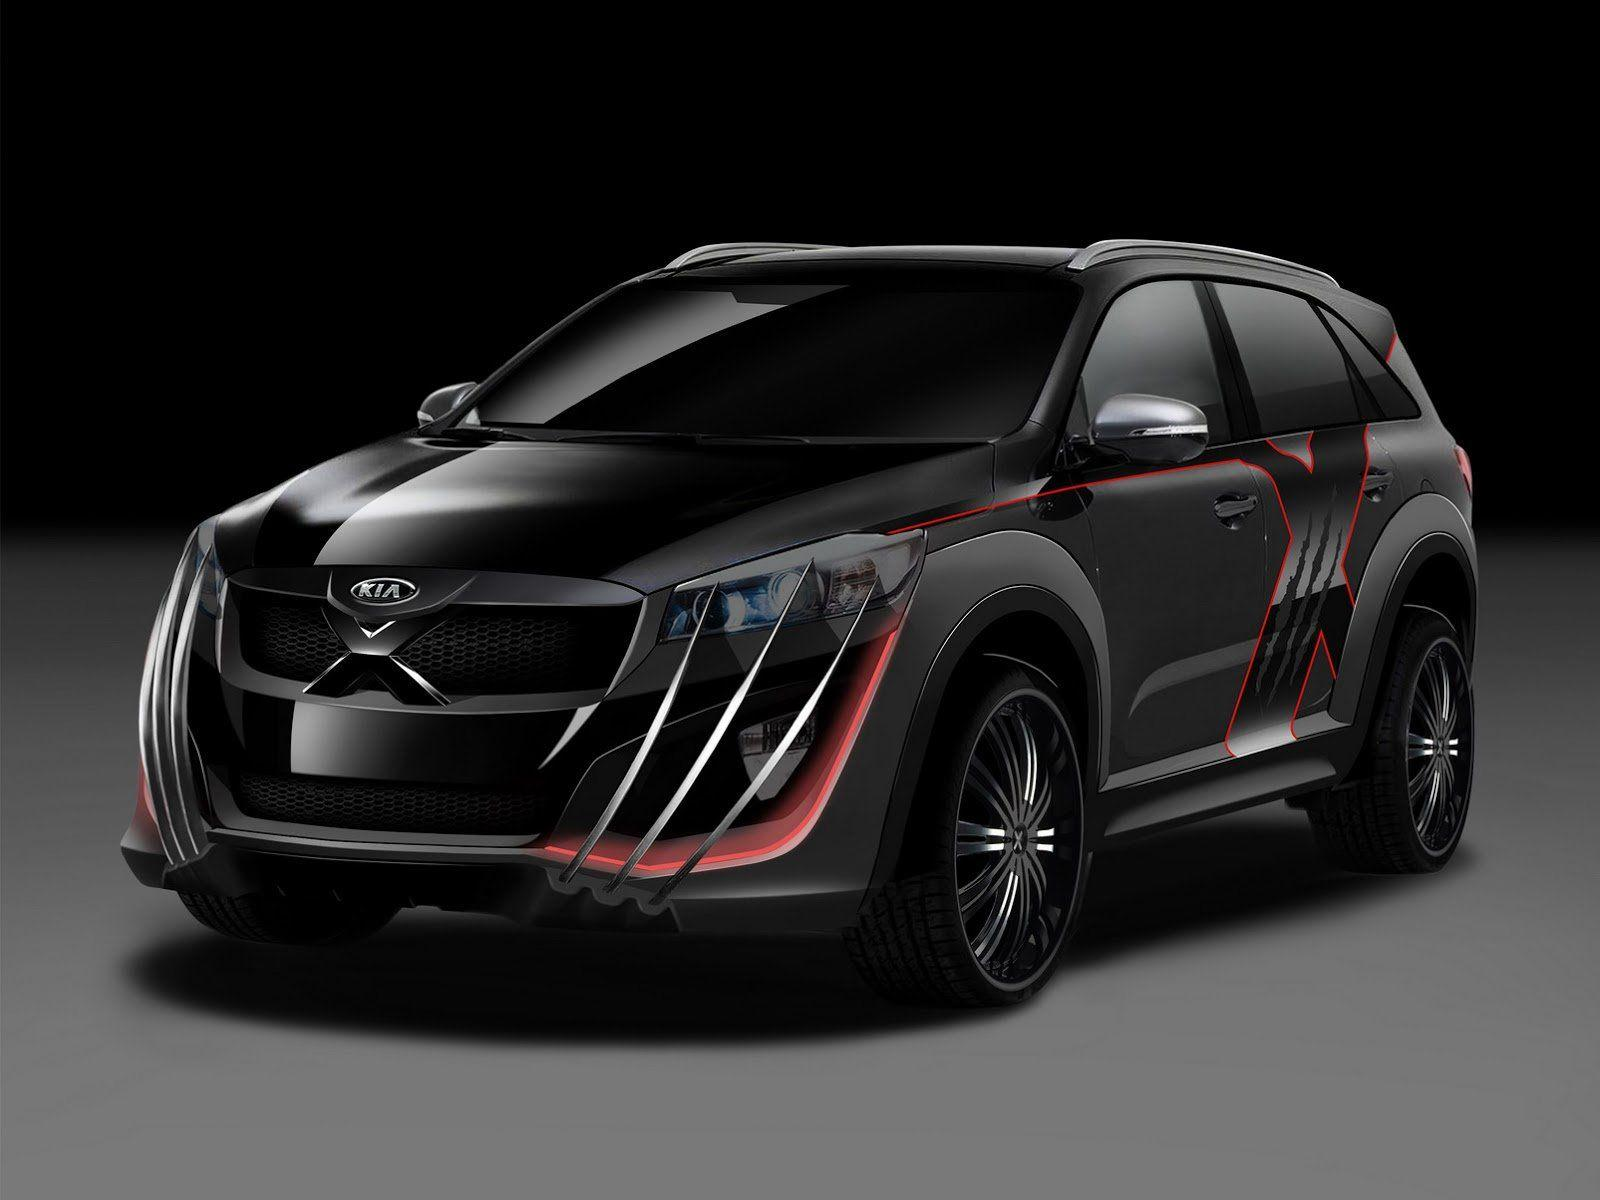 Kia Sorento Wolverine suv cars wallpapers